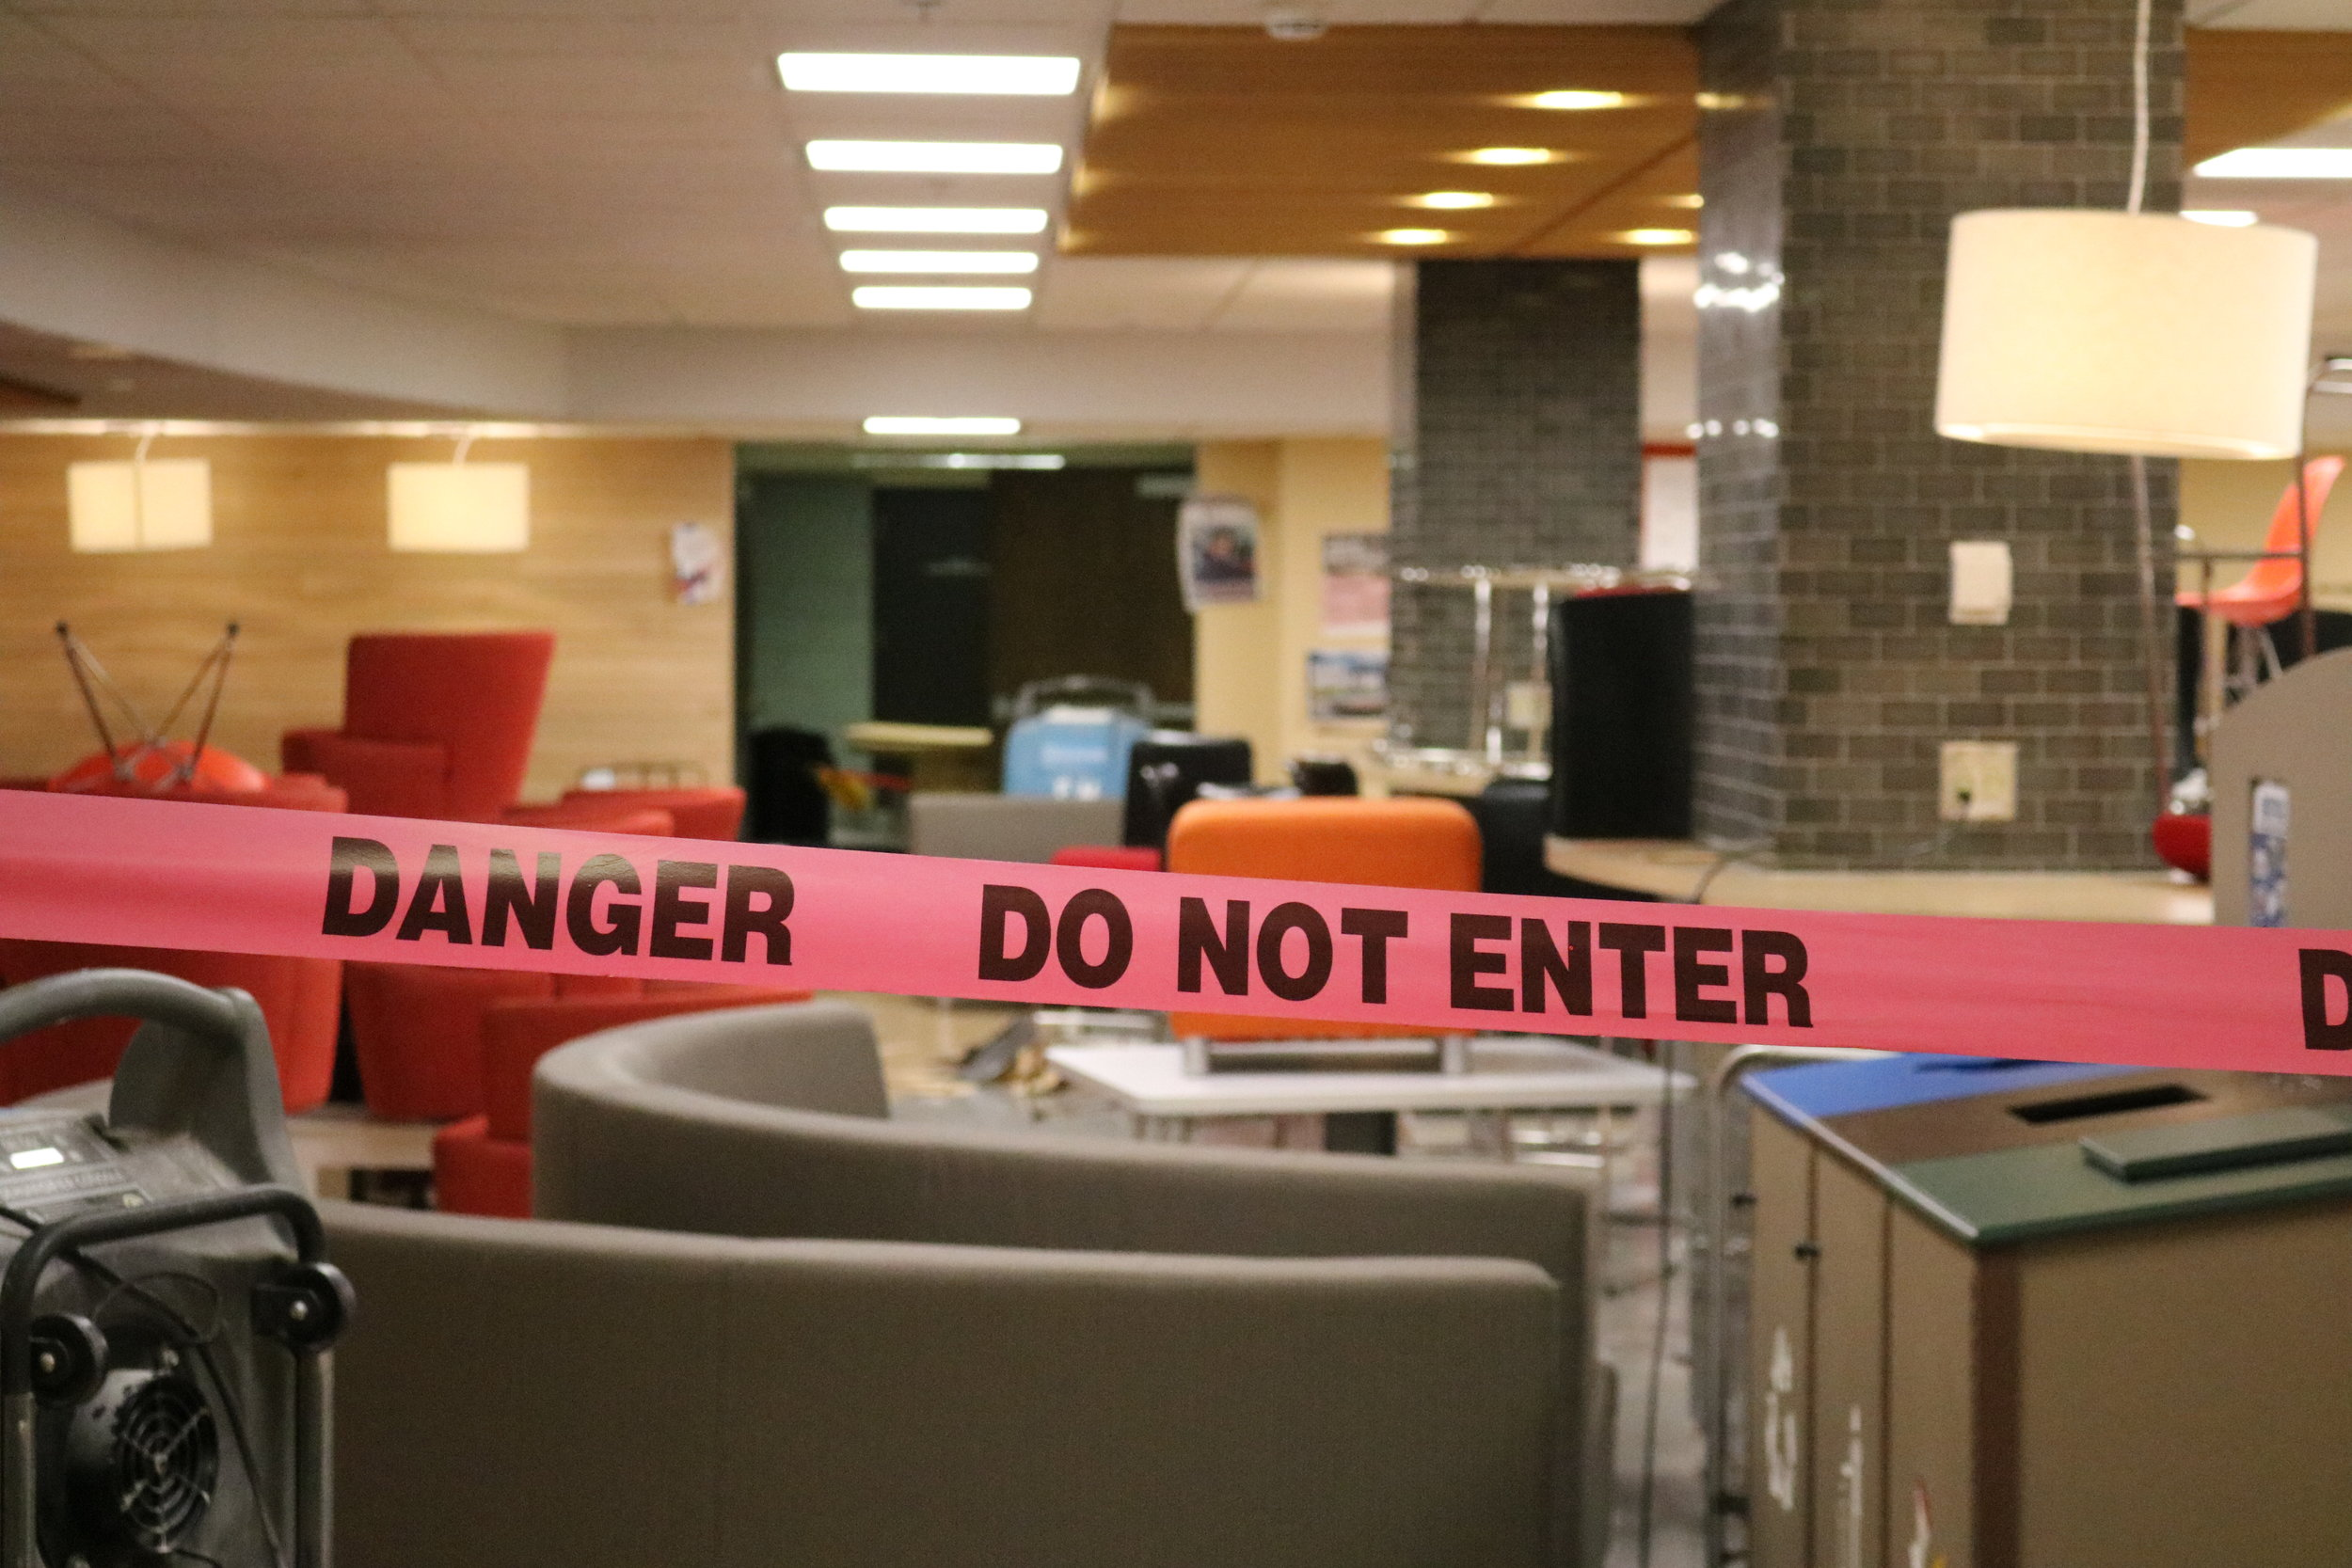 Red caution tape blocks off the entrance into the Ven Den on Feb. 7. Photo by Samantha Church